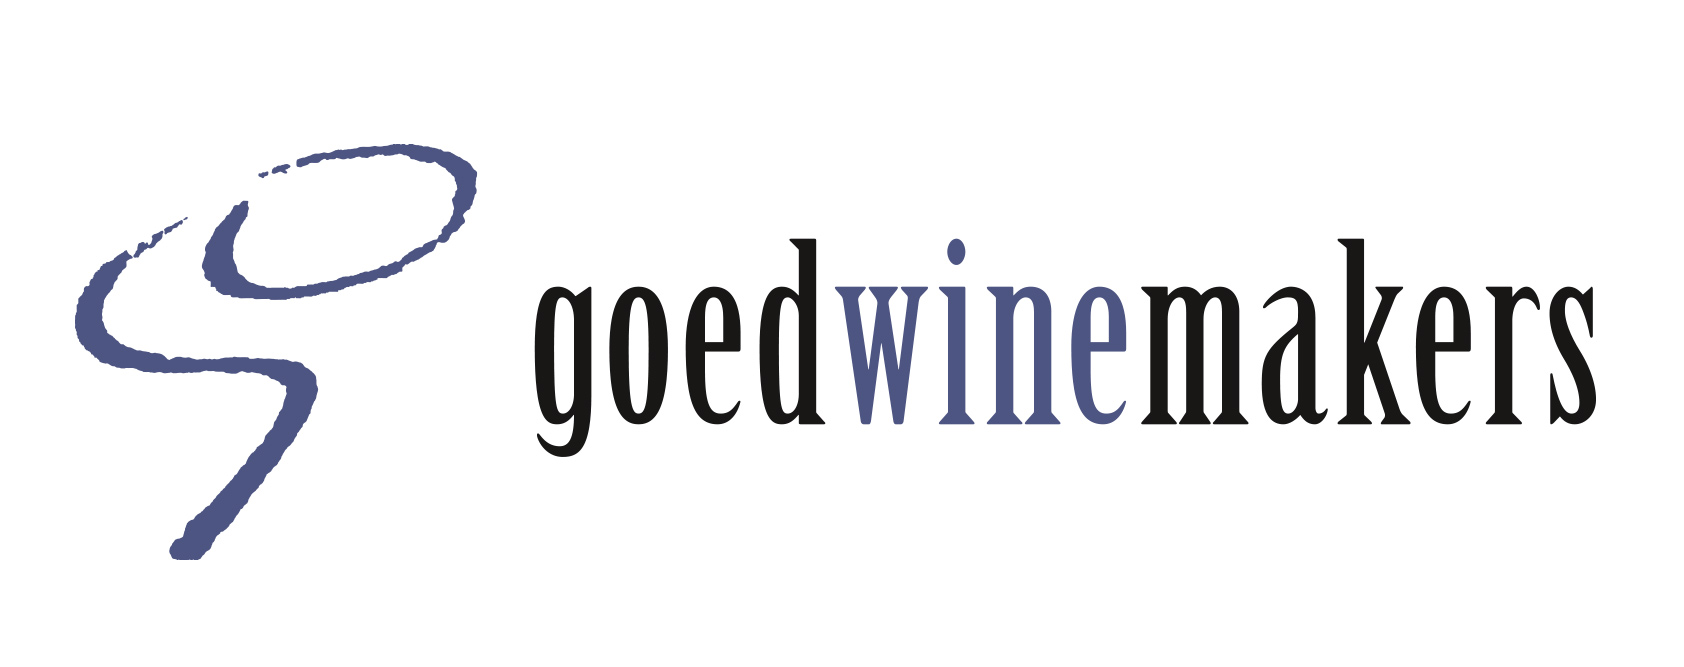 Goedwinemakers